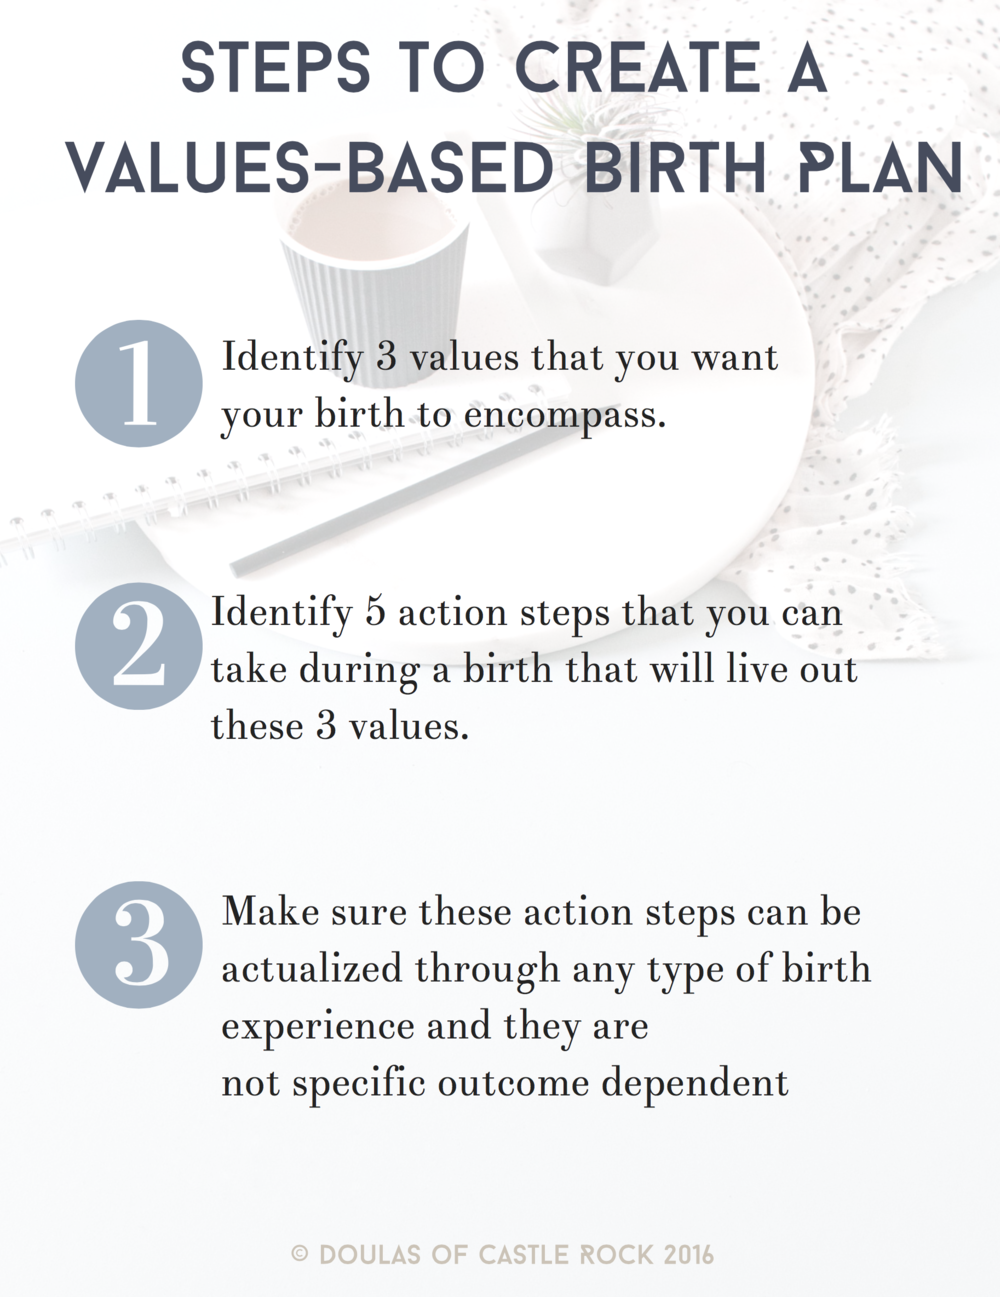 Steps to Create Values-Based Birth Plan.png